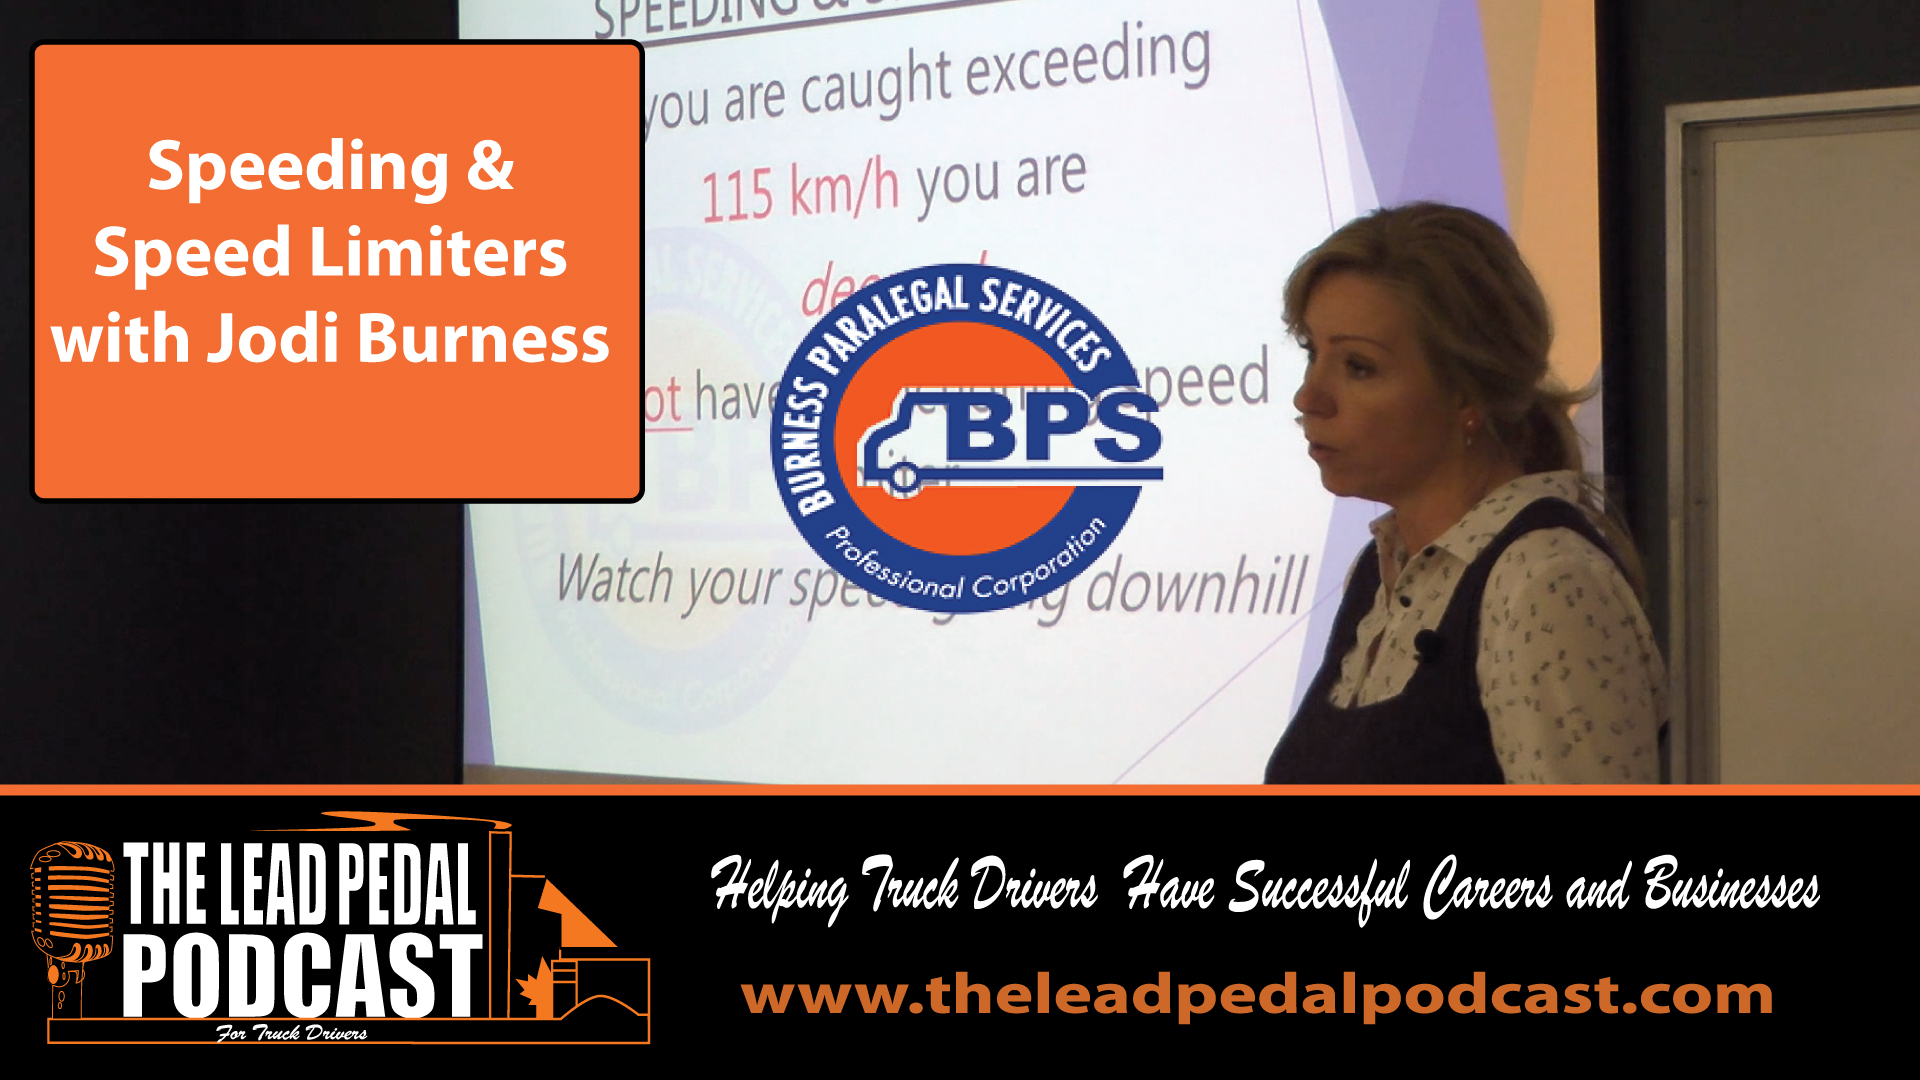 Jodi Burness on speeding